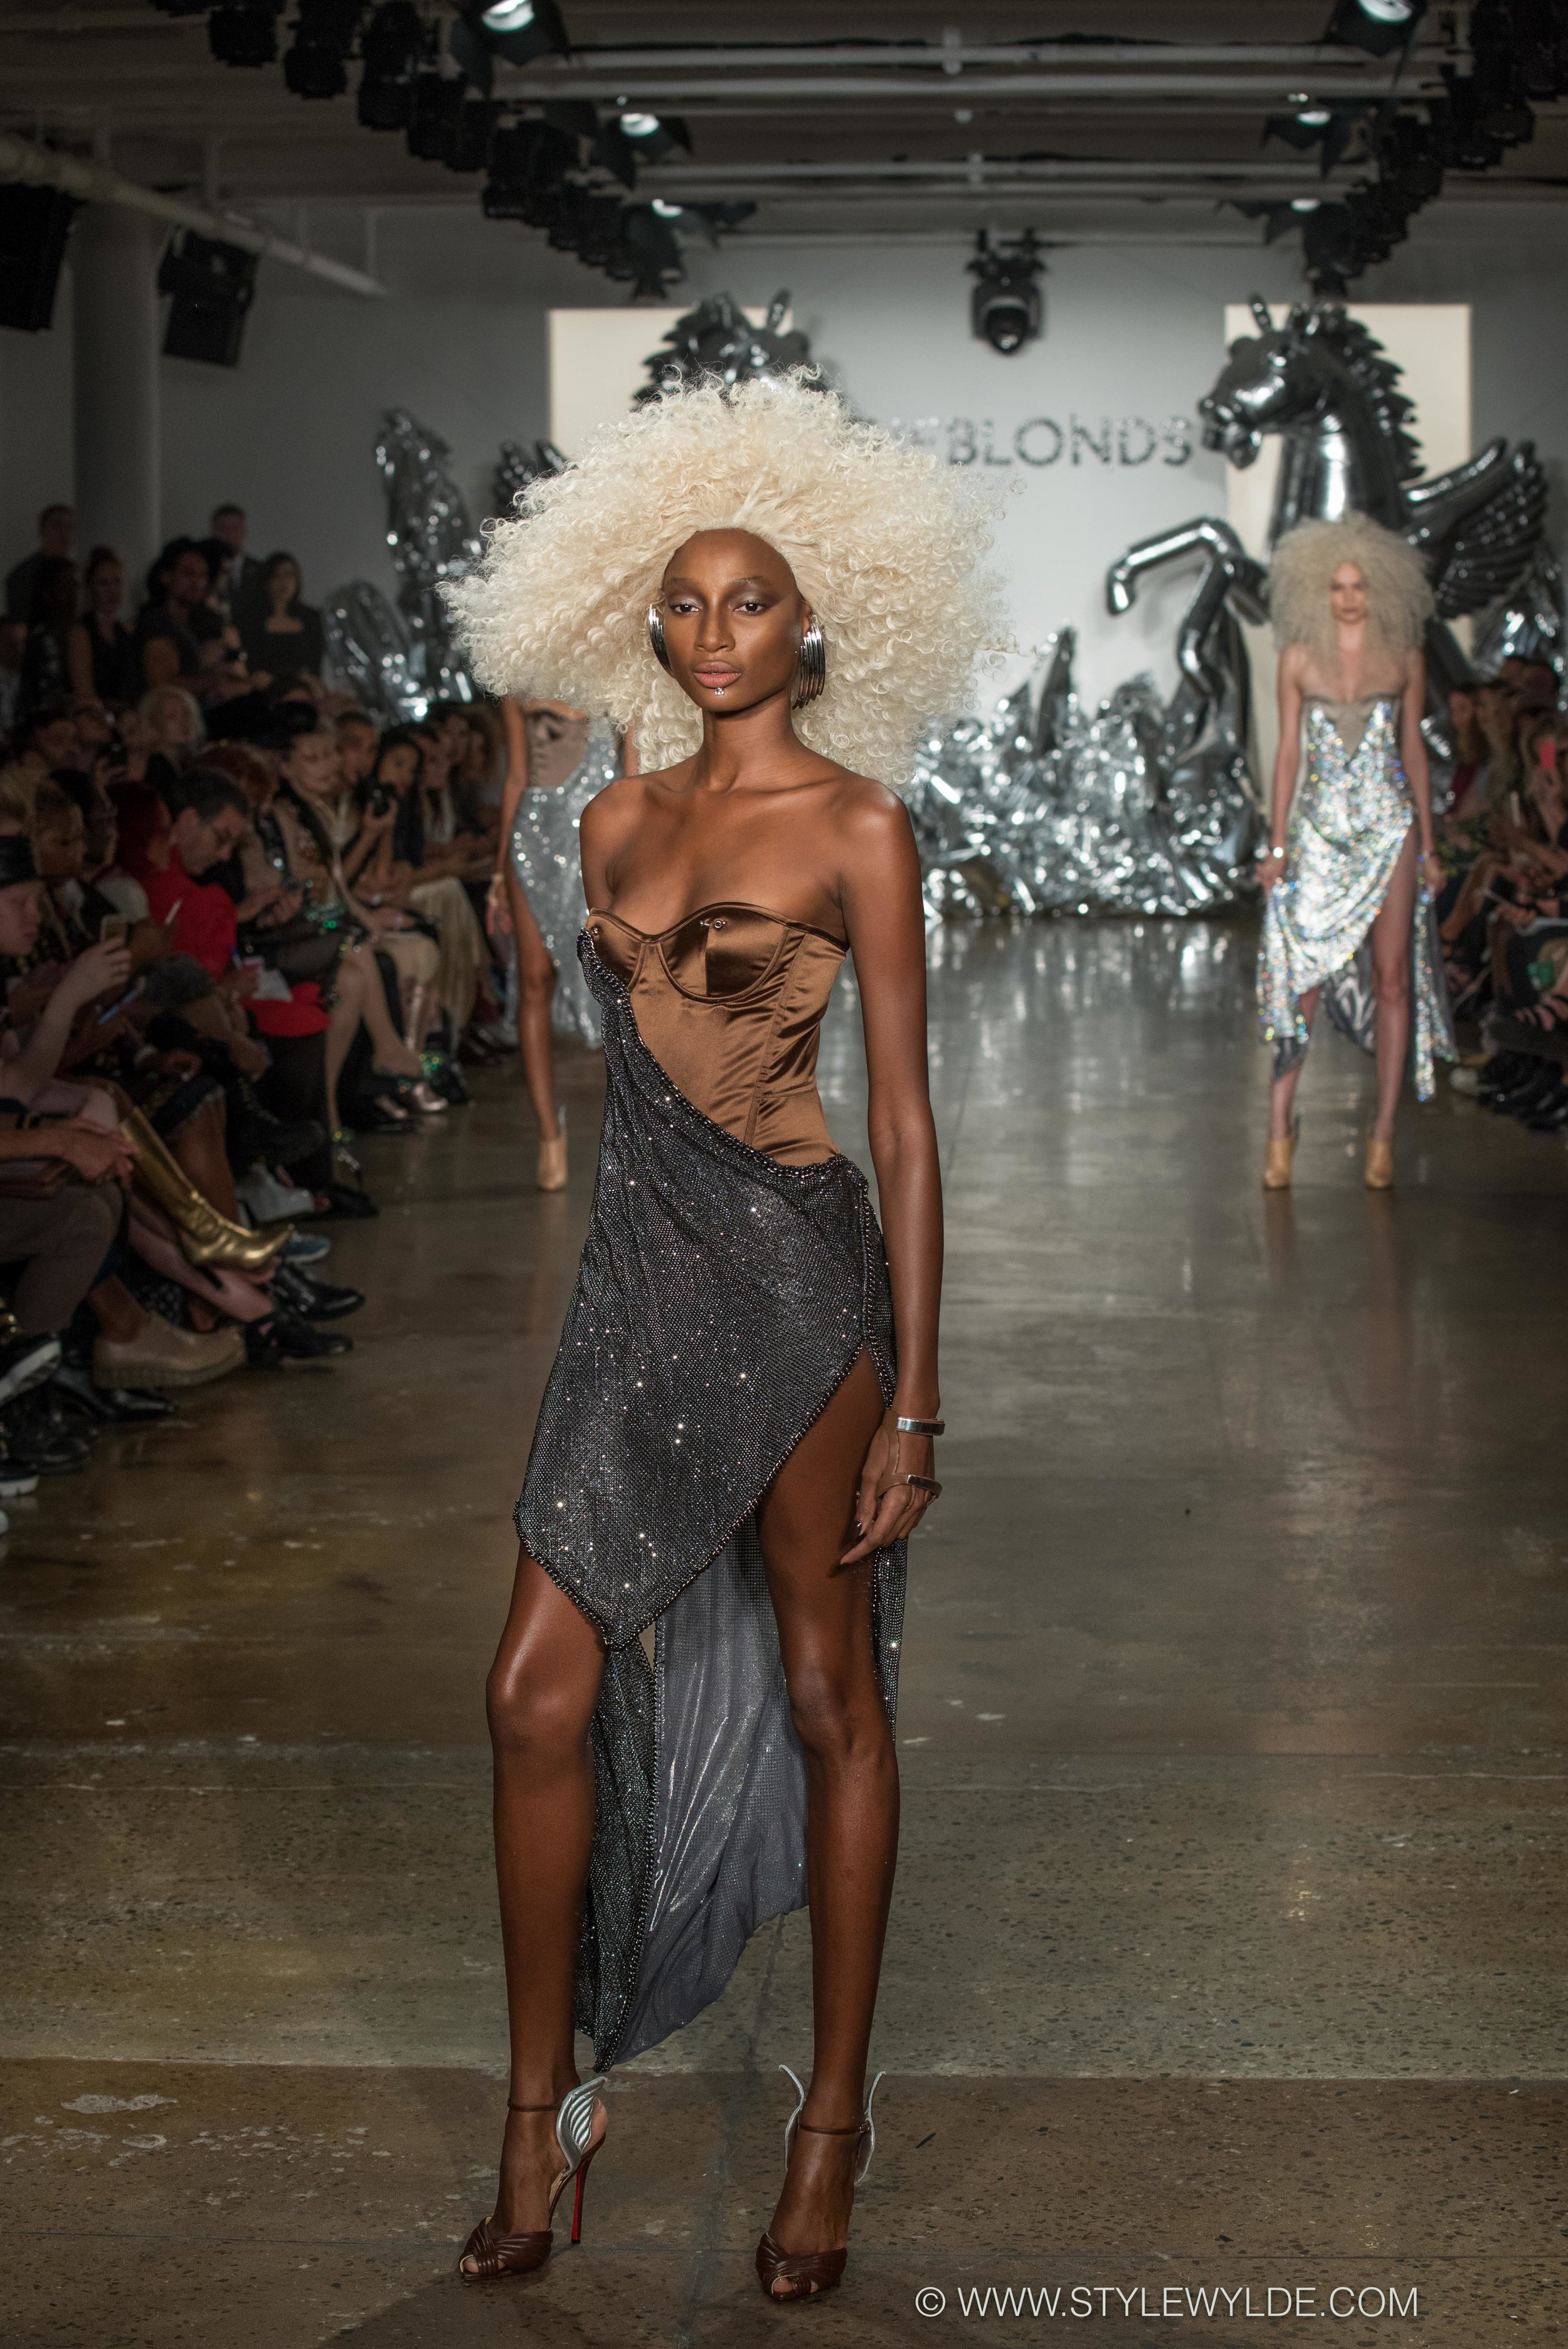 stylewylde-The Blonds SS17-FOH- Edits-1-3.jpg